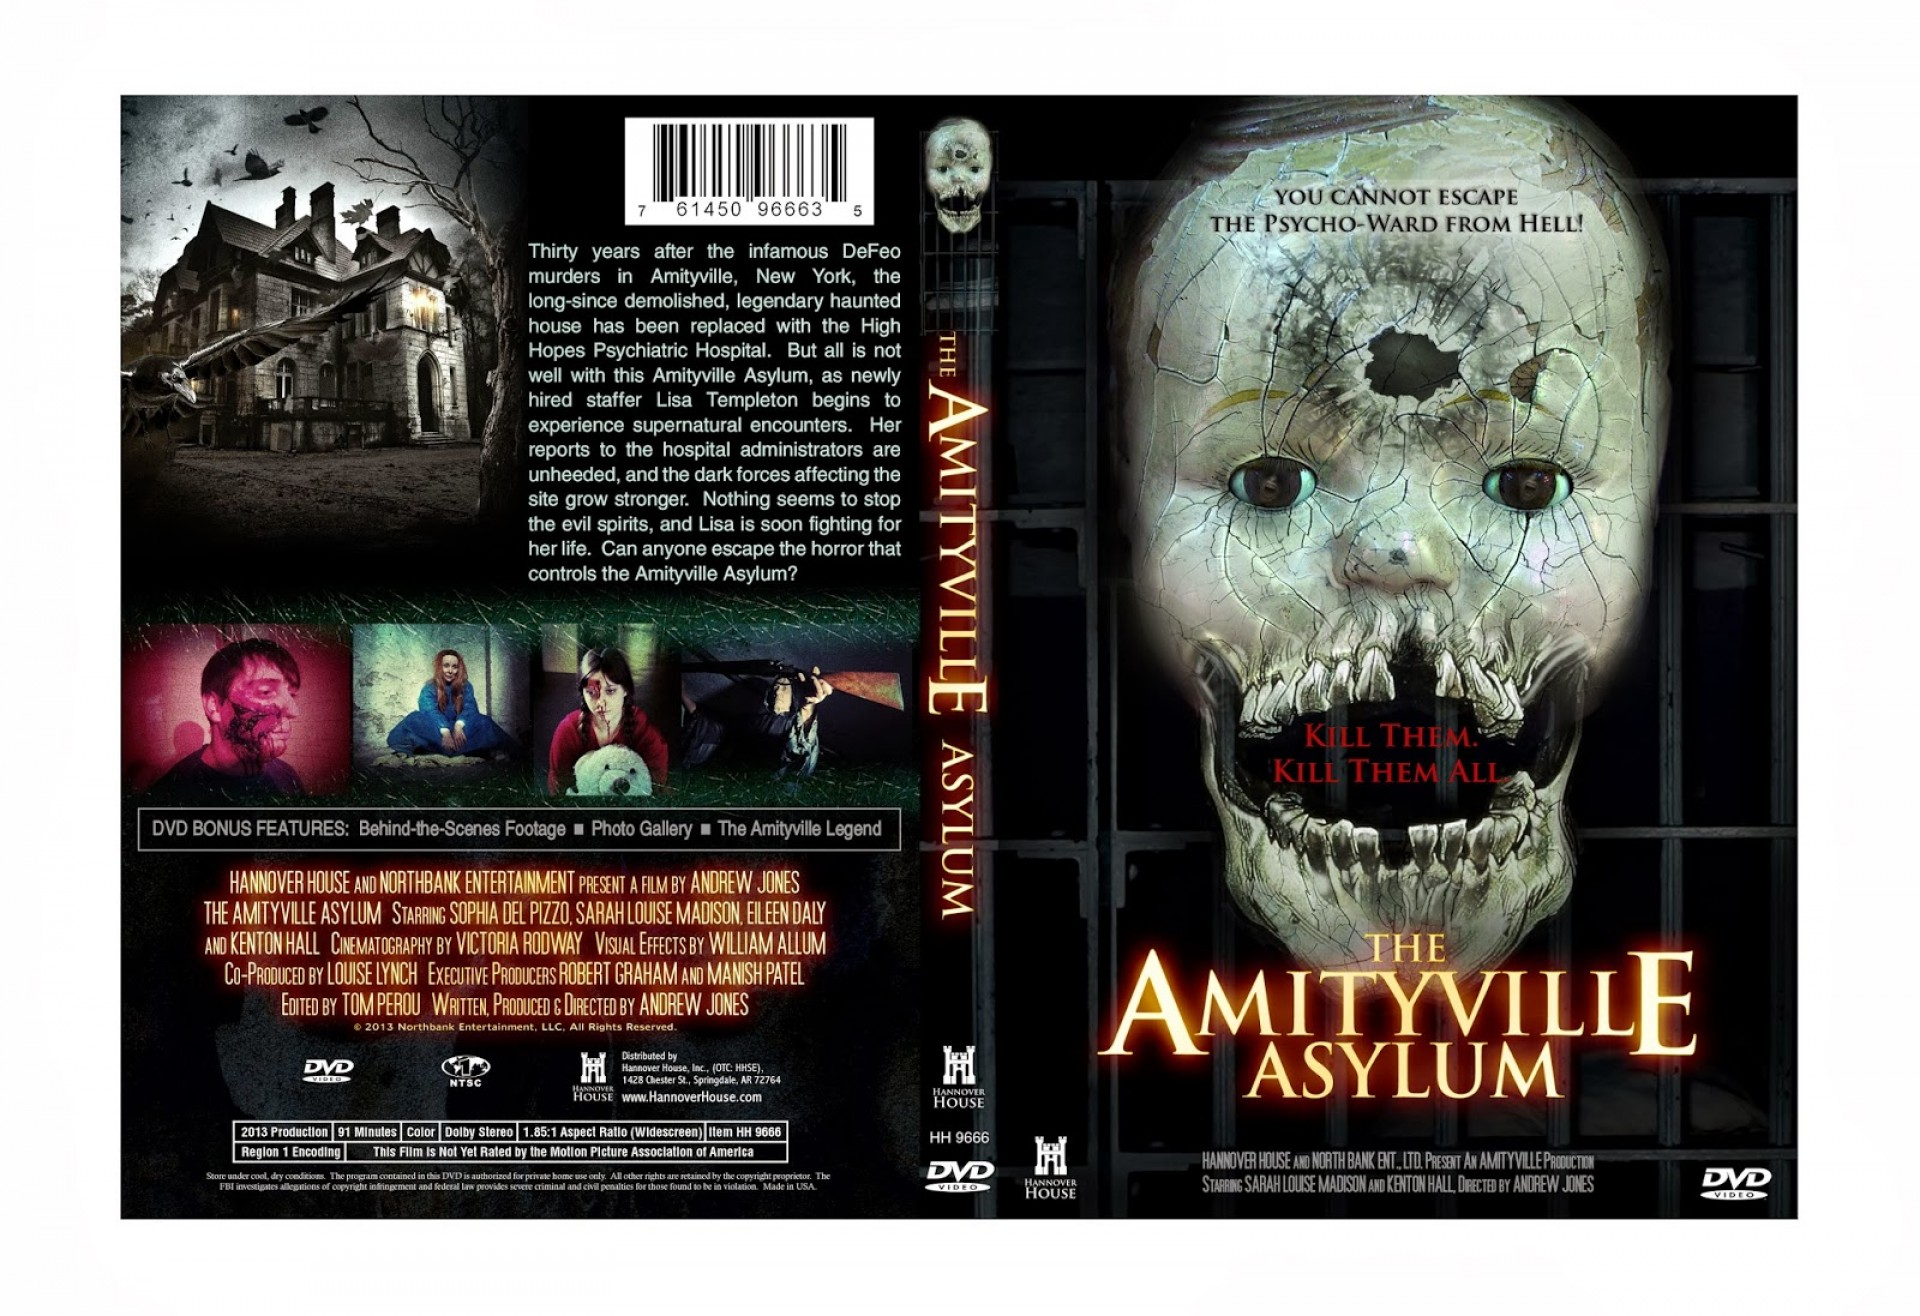 009 Essay Example On Hard Work Always Pays Amityville252bfull252bwrap252bdec Exceptional Off 1920